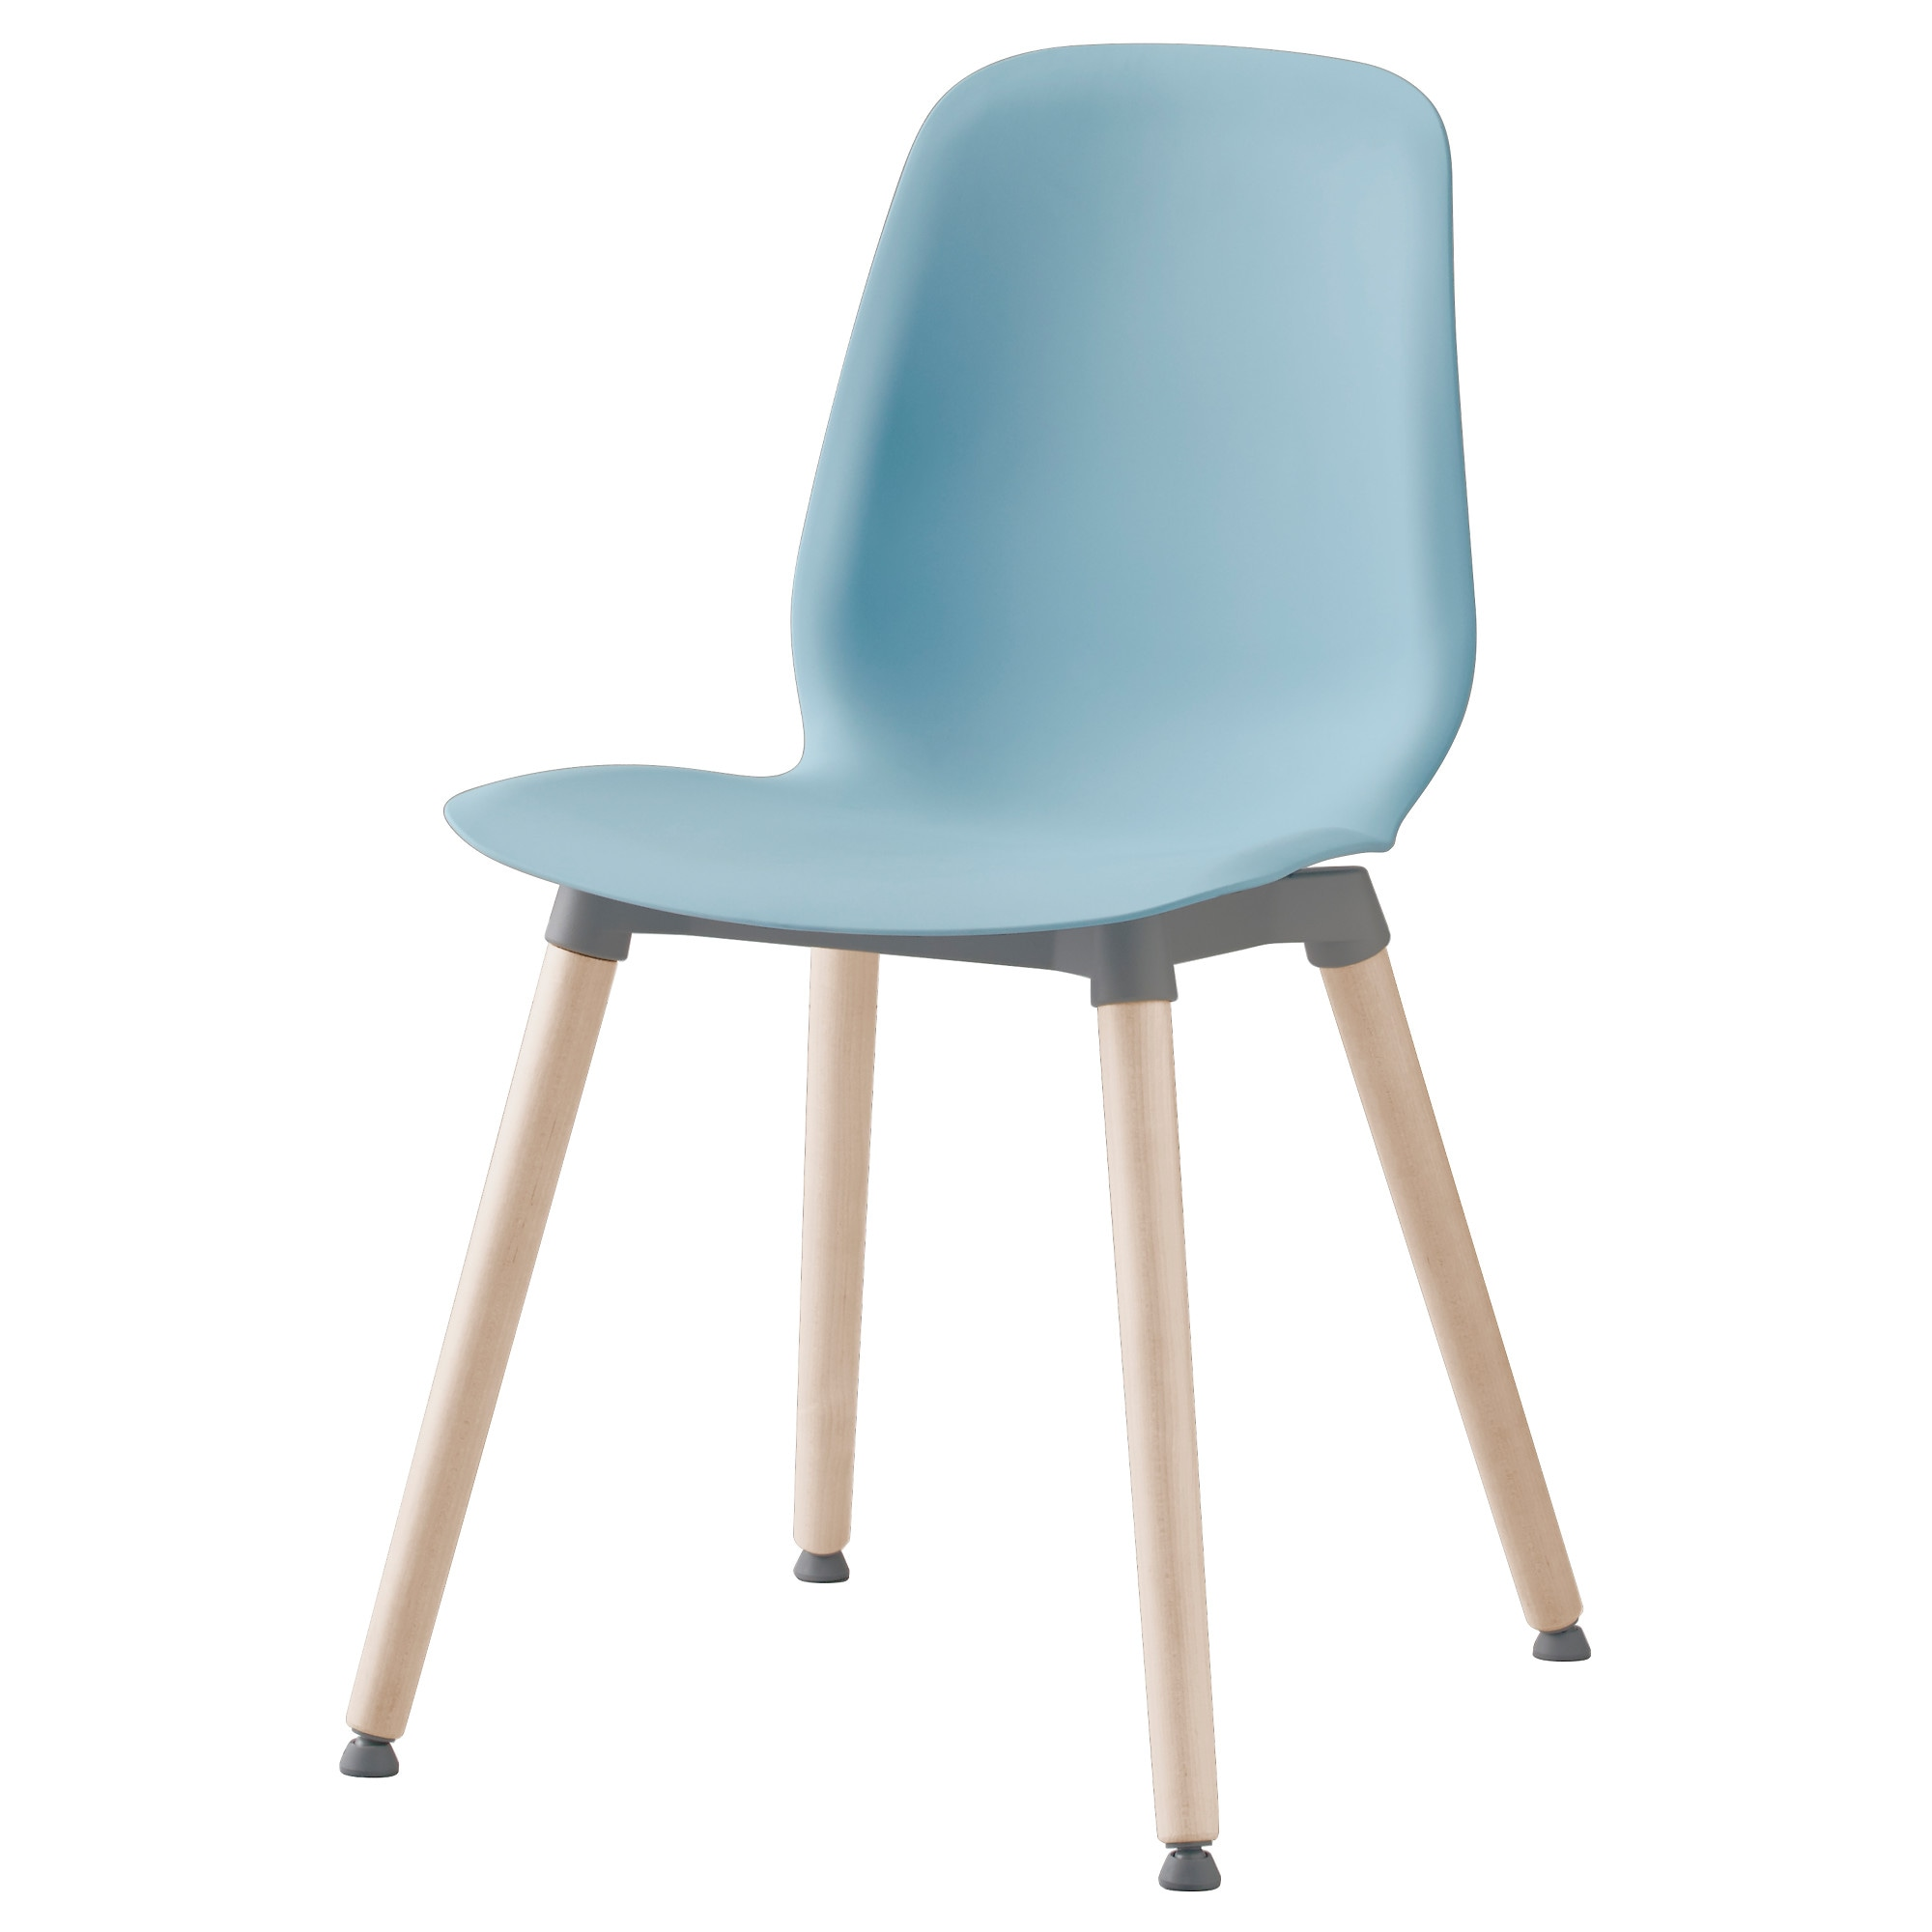 LEIFARNE chair  light blue  Ernfrid birch Tested for  243 lb Width  20Dining chairs   Dining chairs   Upholstered chairs   IKEA. High Back Dining Chairs Ikea. Home Design Ideas